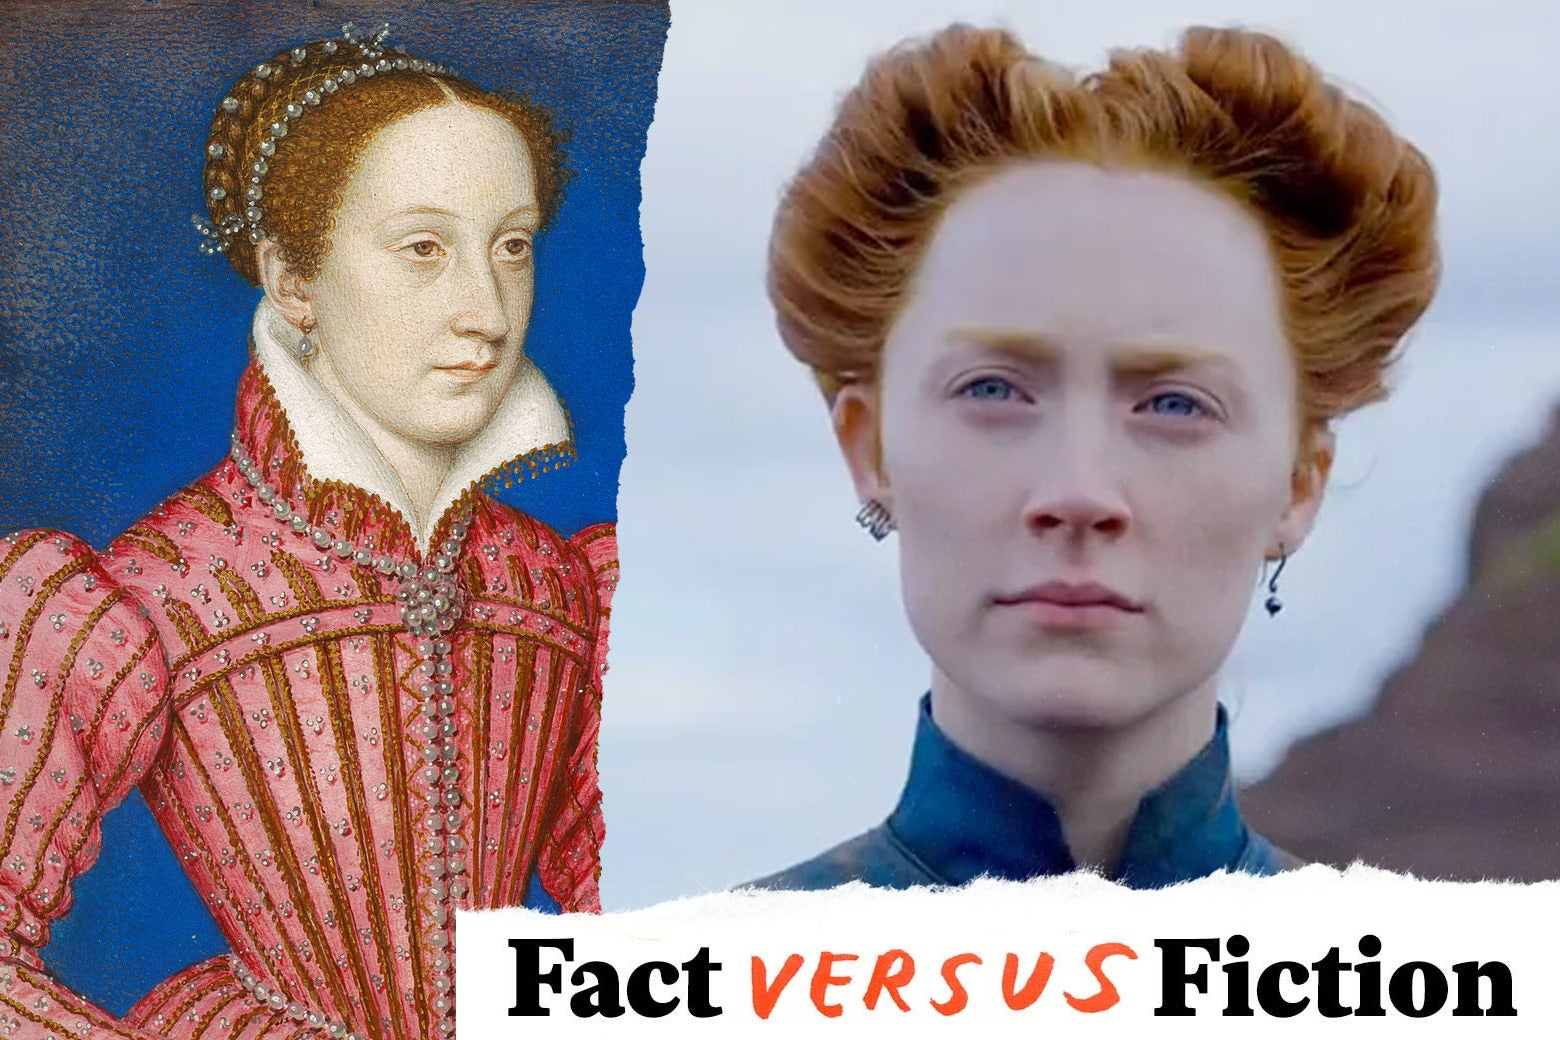 Portrait of Mary, Queen of Scots, and Saoirse Ronan as Mary, Queen of Scots